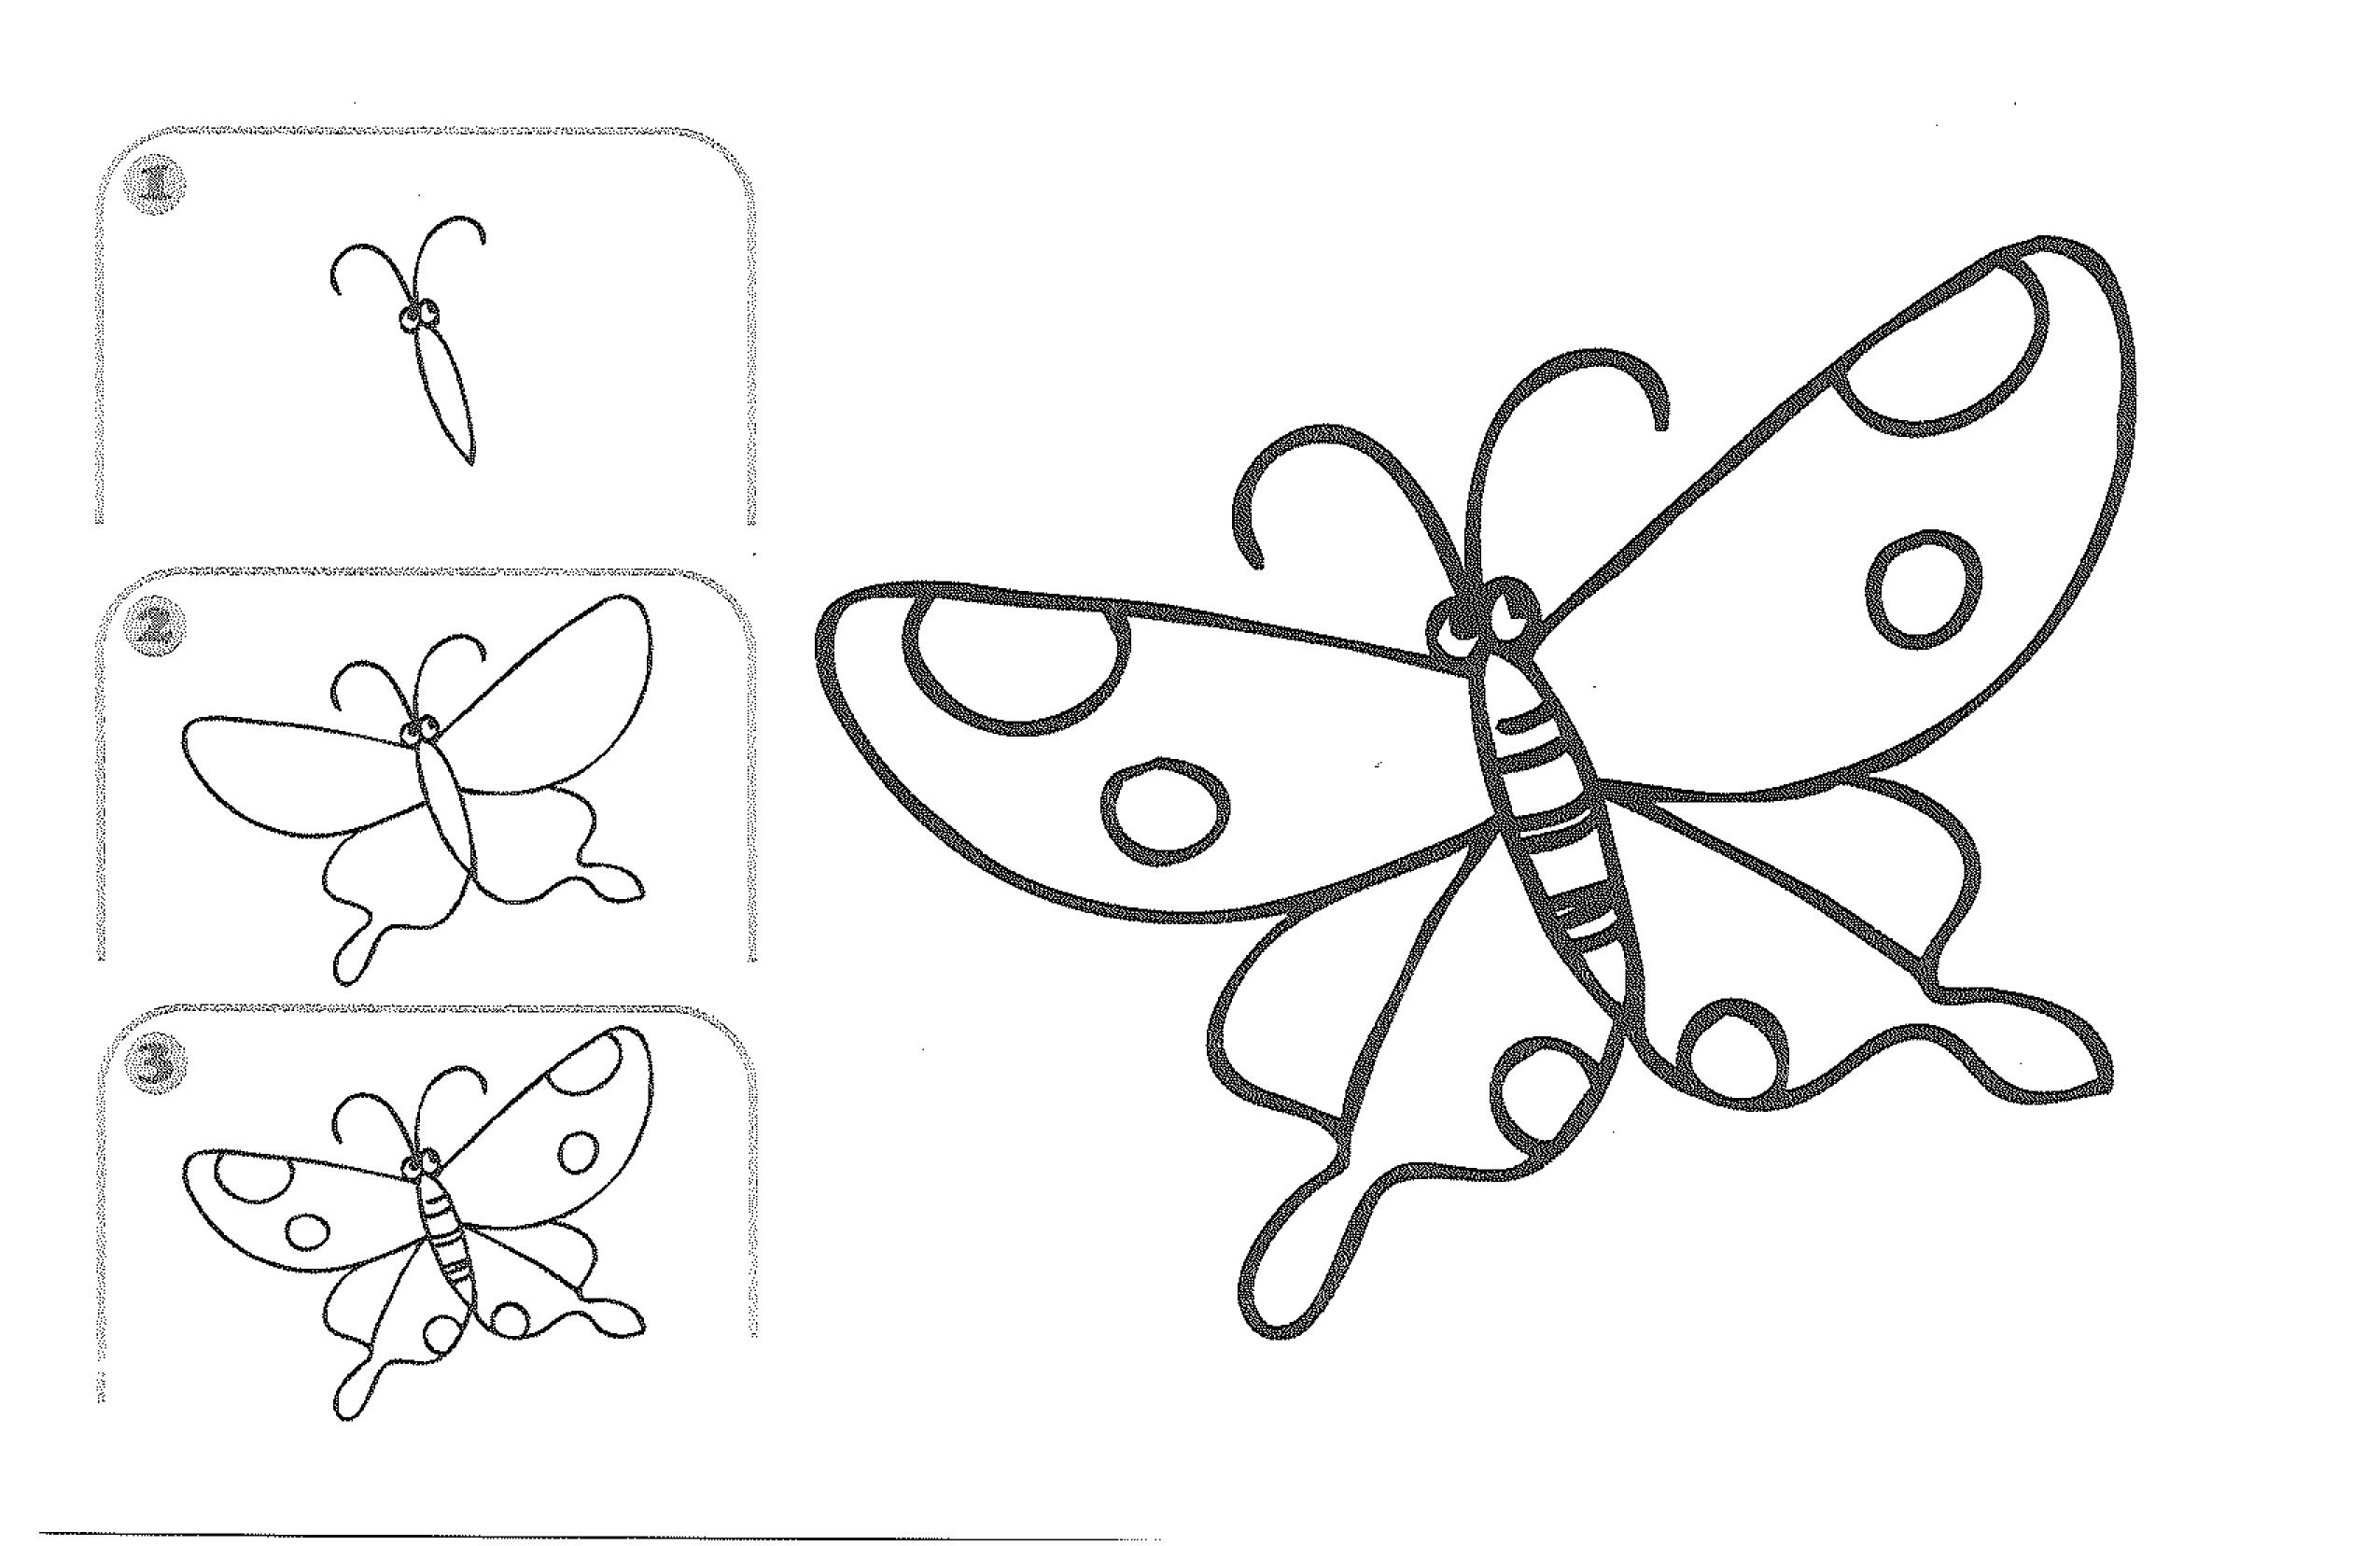 Drawings by kids kids learn to draw insects teaching for Learn to draw cartoons step by step lessons